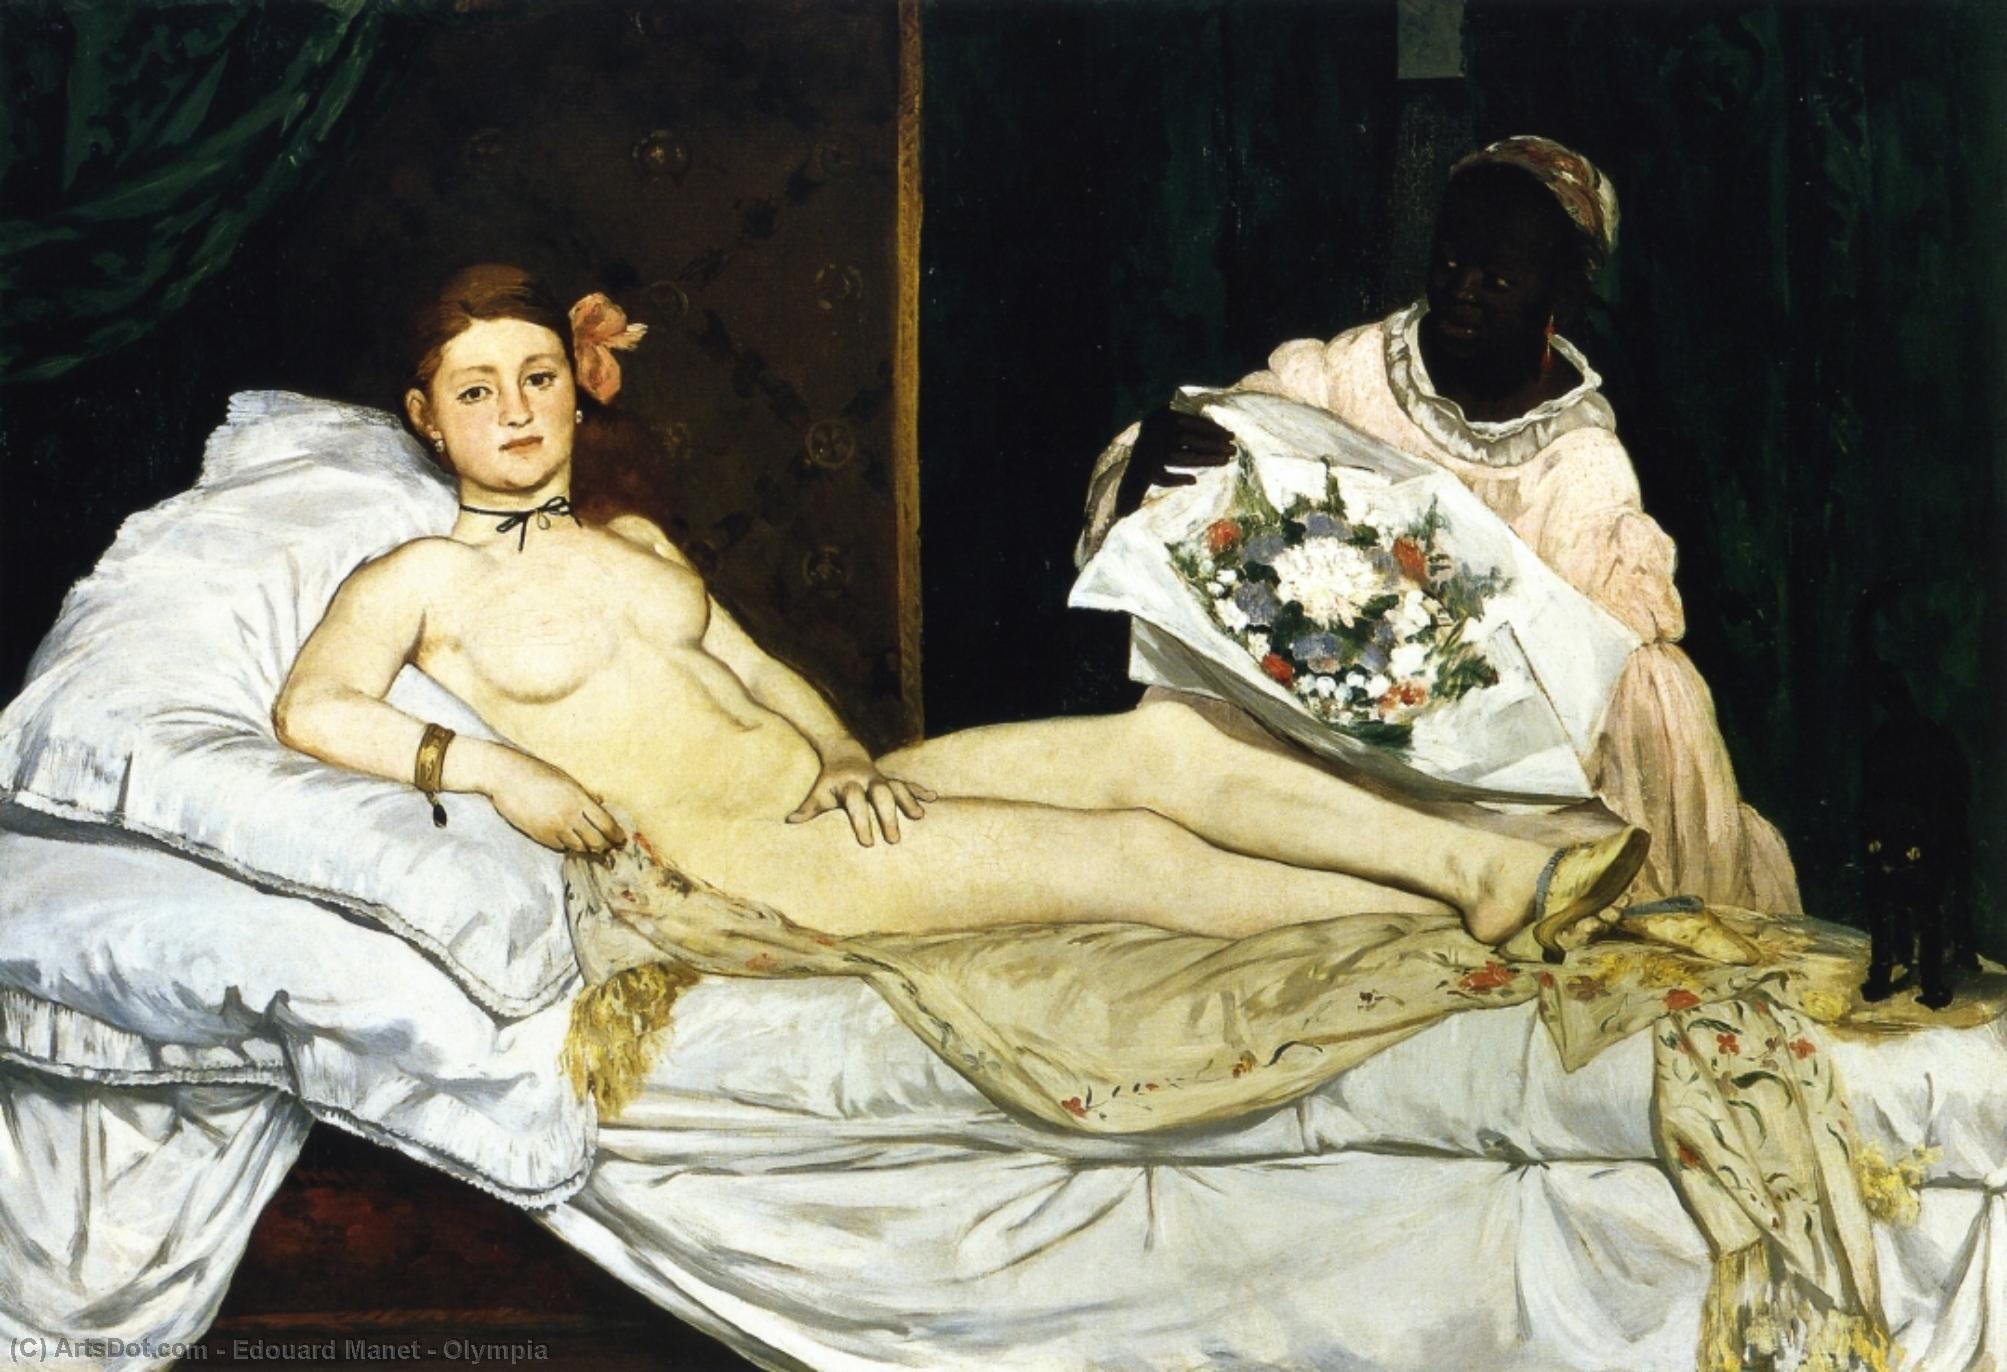 Wikioo.org - The Encyclopedia of Fine Arts - Painting, Artwork by Edouard Manet - Olympia